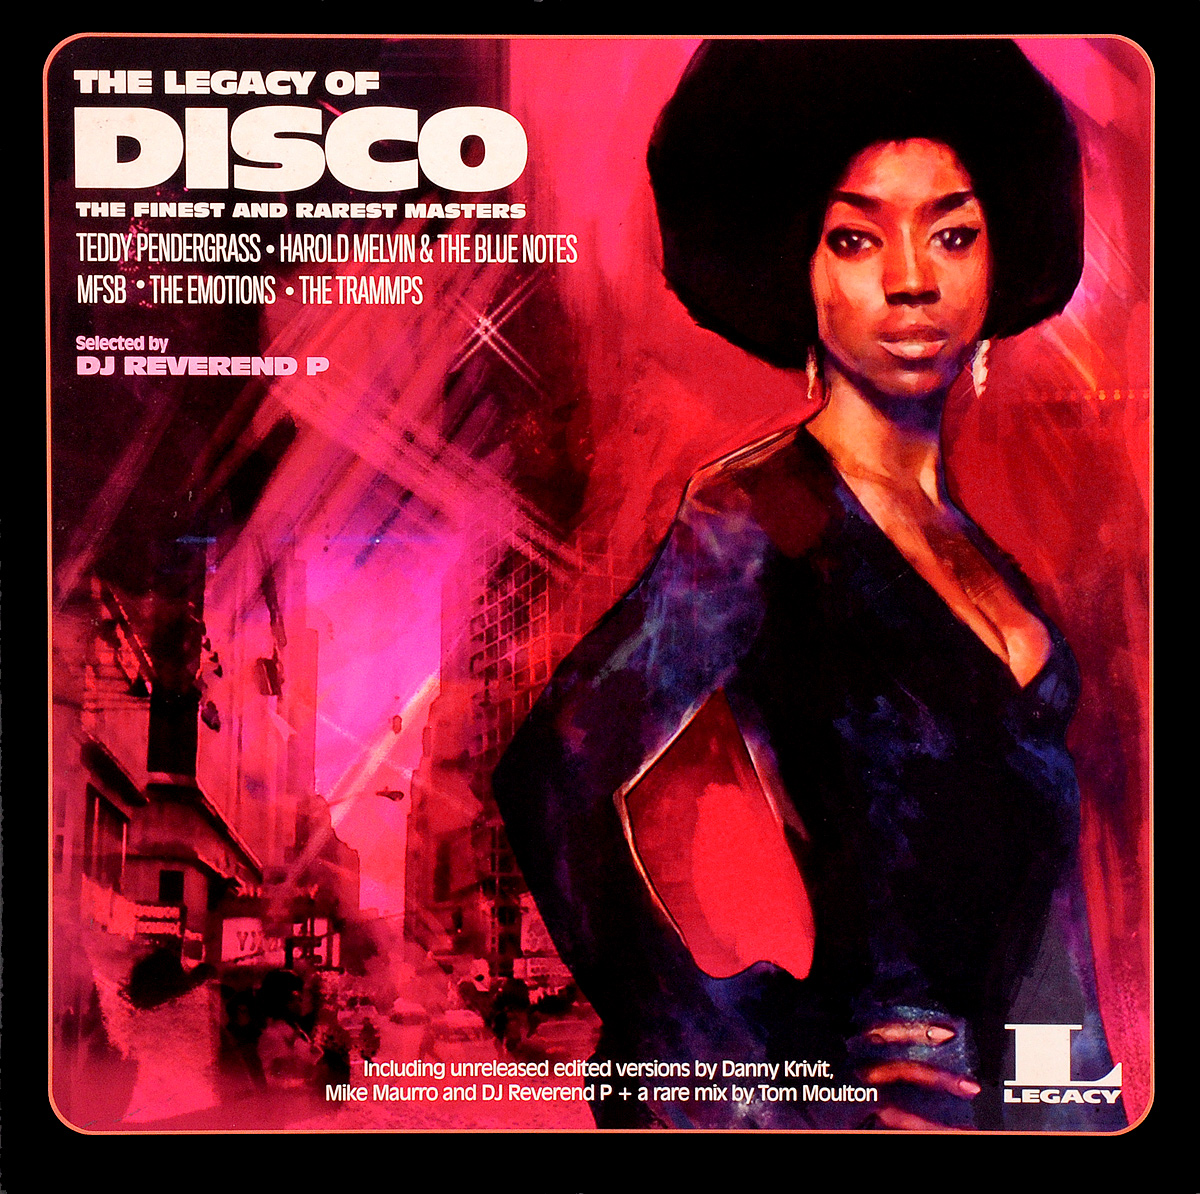 M.F.S.B.,The Emotions,DJ Reverend P,Тэдди Пендерграсс,Danny Krivit,Mike Maurro,Гарольд Мелвин,The Blue Notes,The Trammps The Legacy Of Disco (2 LP) the o jays earth wind and fire билл уизерс dj reverend p shelter m f s b билли пол гарольд мелвин the blue notes тайрон дэвис the legacy of soul 2 lp